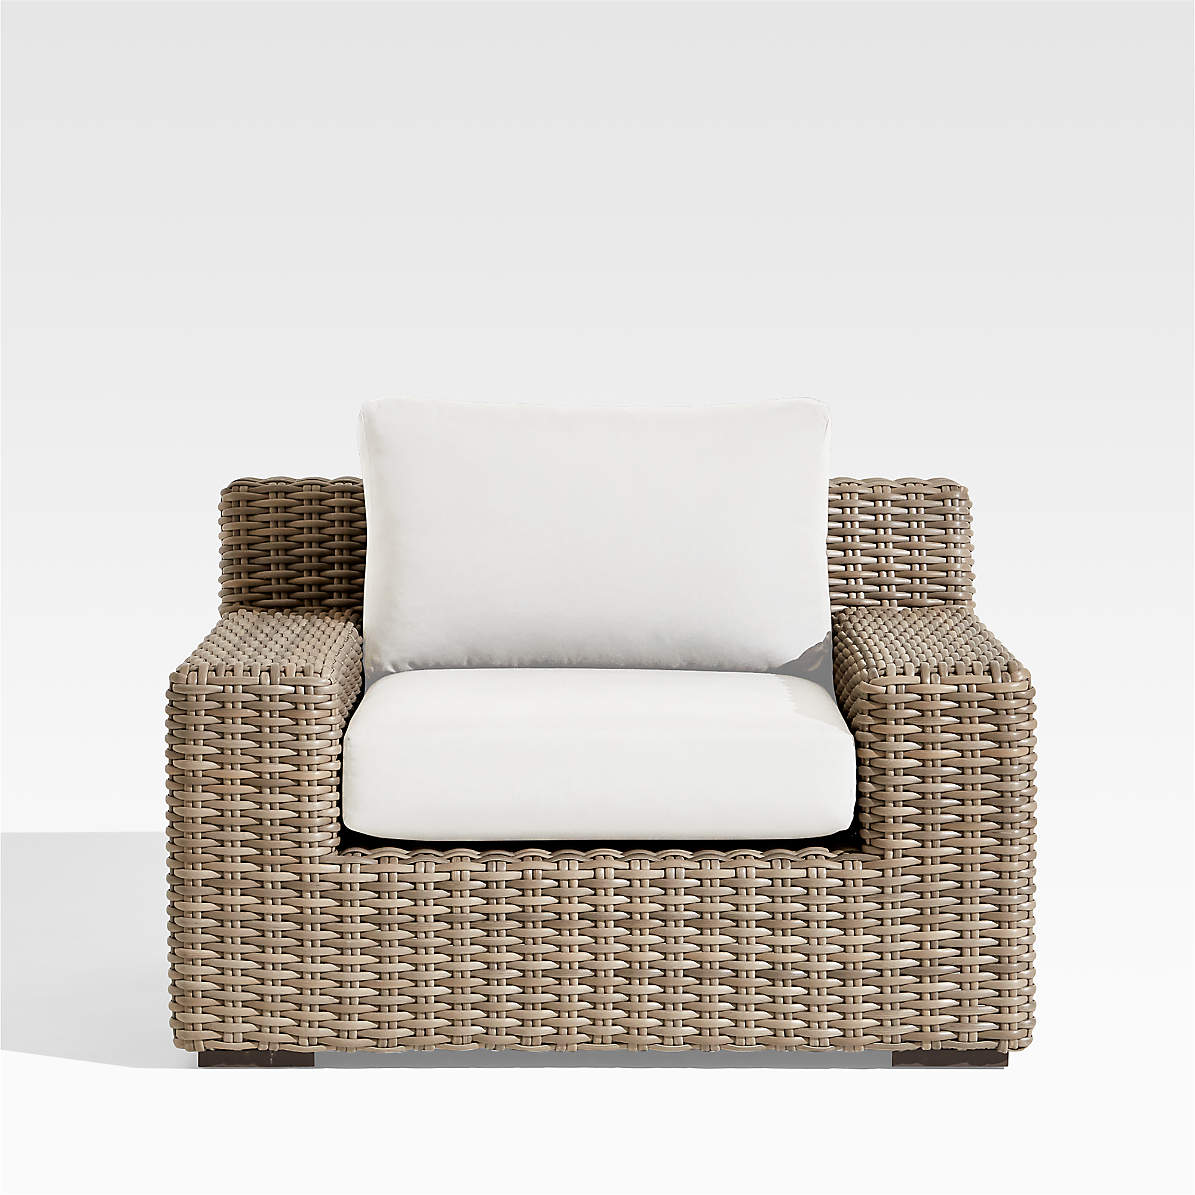 Abaco Outdoor Lounge Chair With White, White Outdoor Lounge Chair Cushions